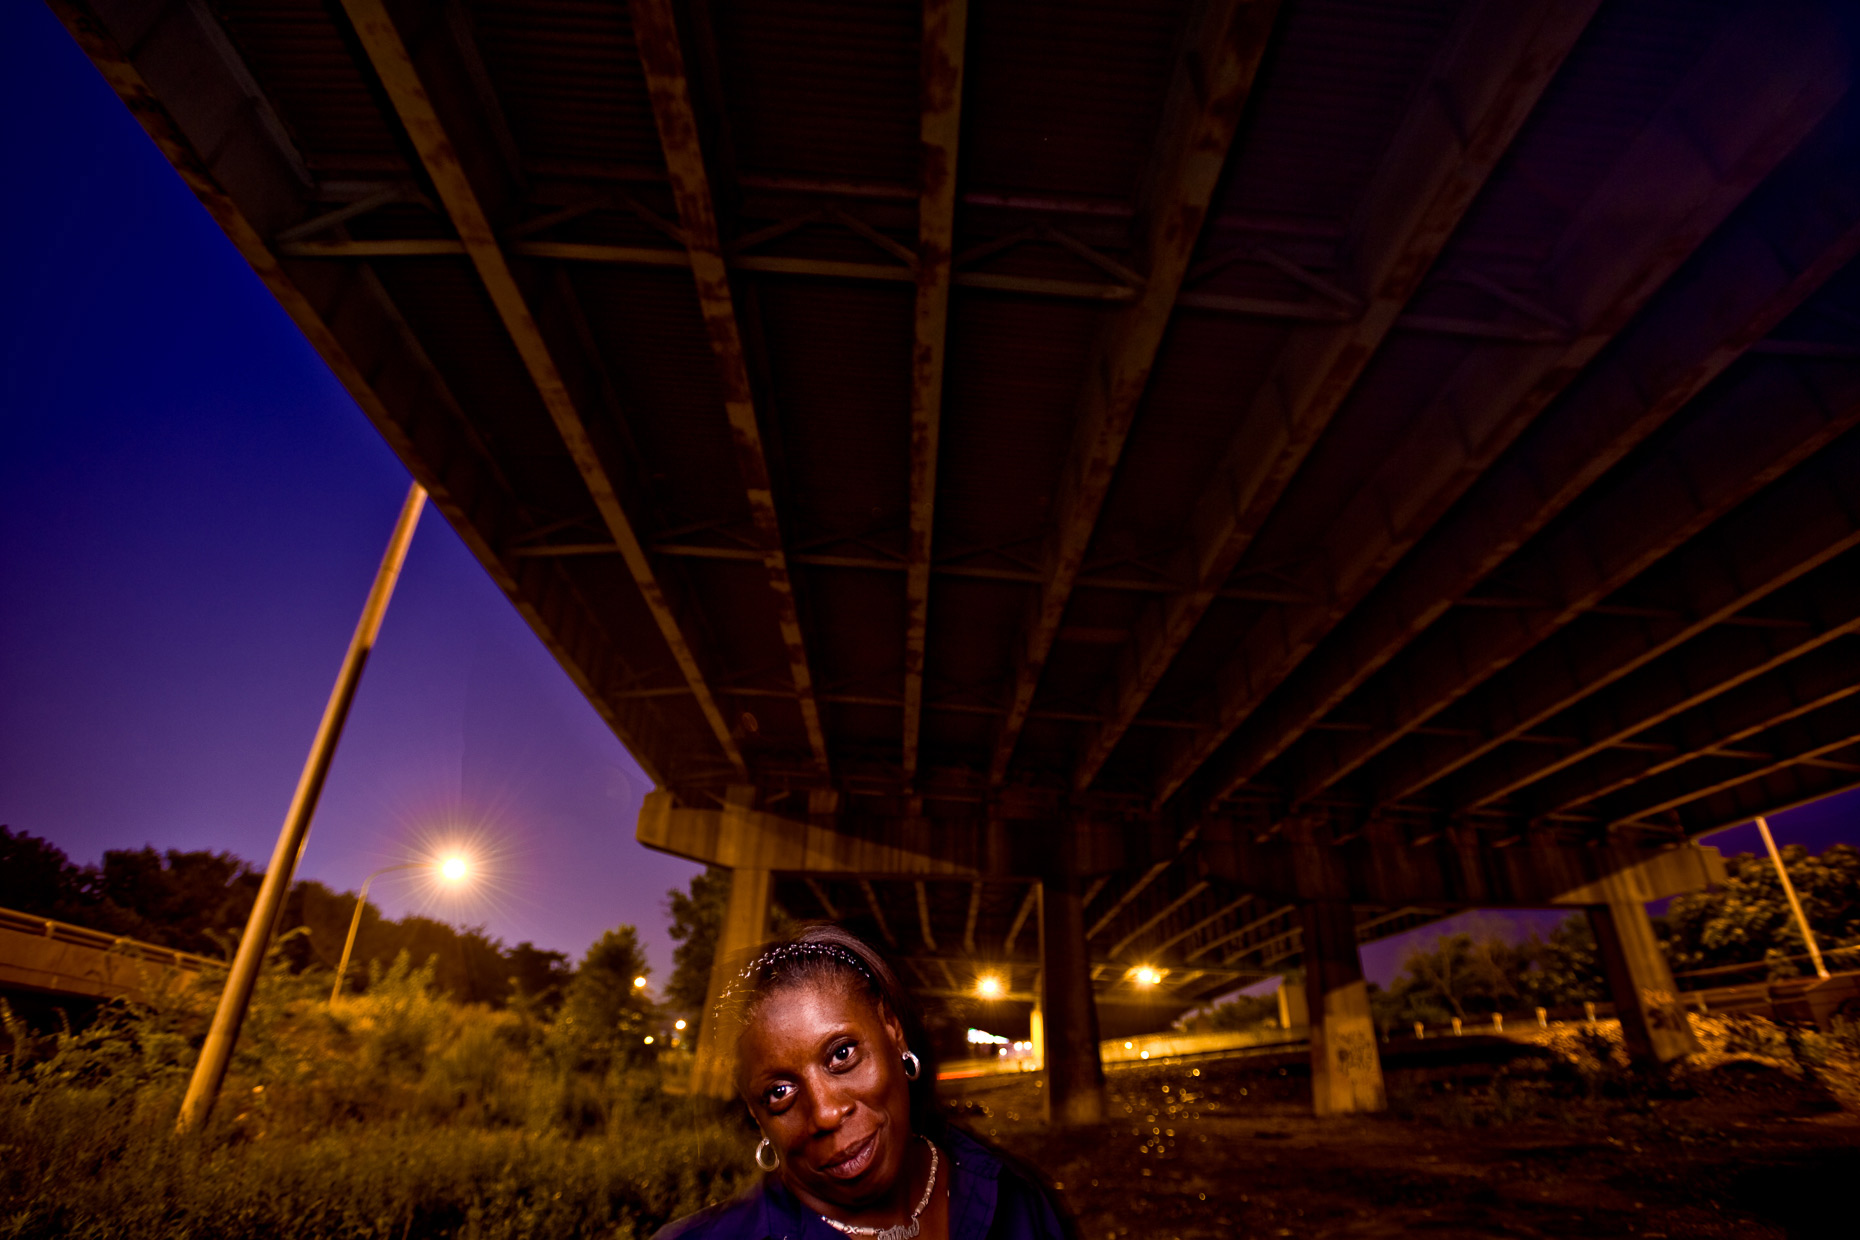 rwa-woman-under-highway-0135